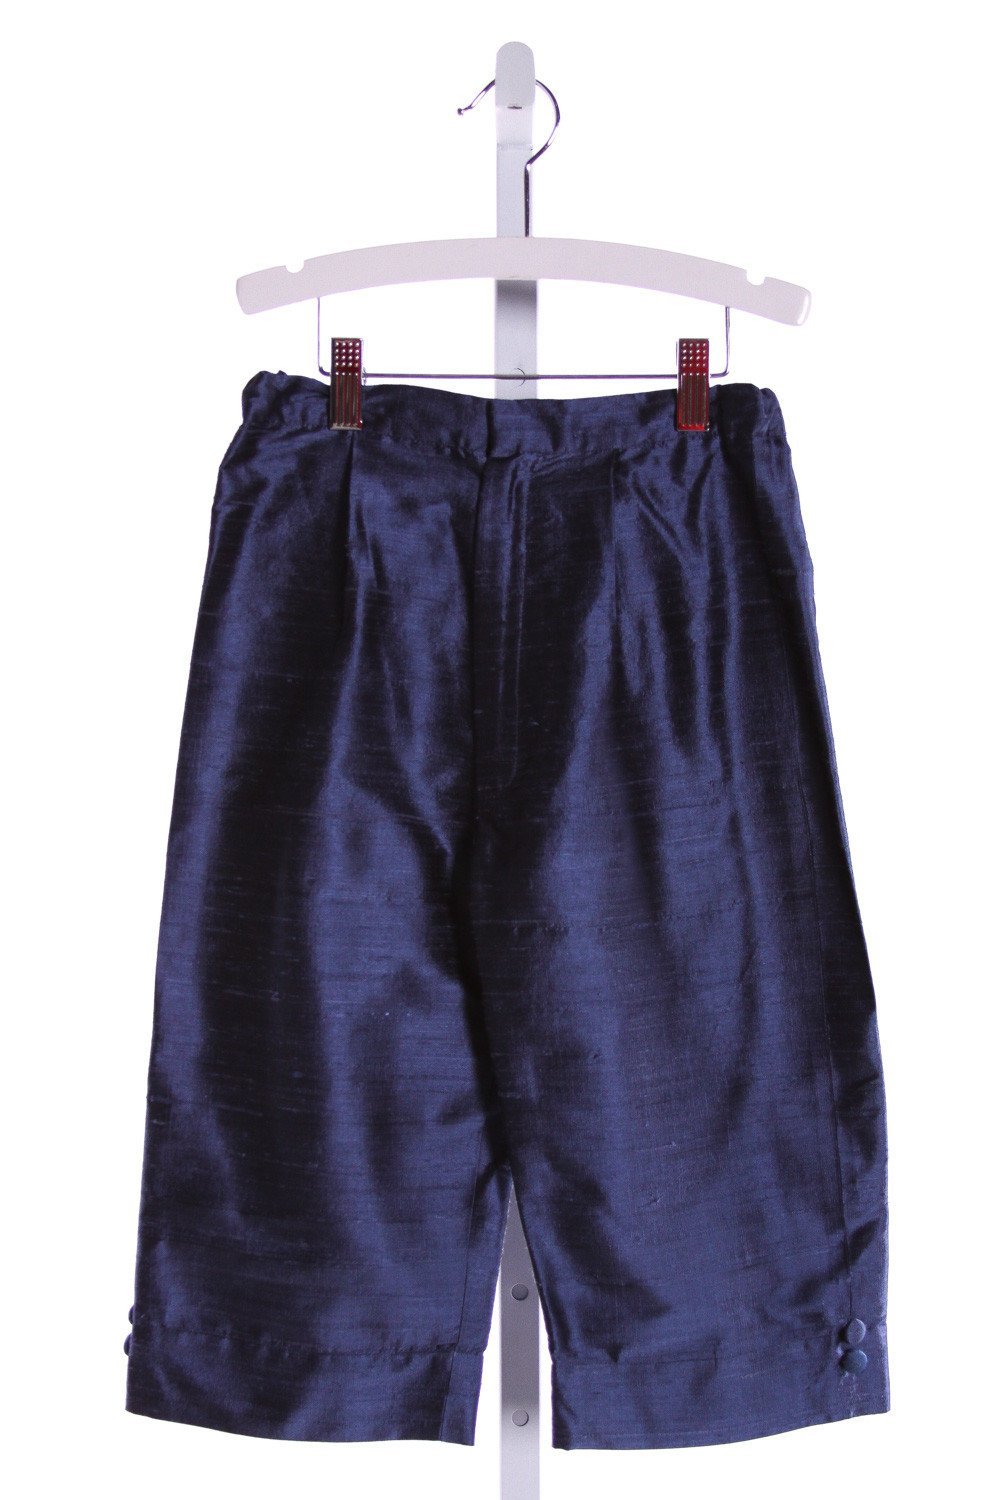 LITTLE BEVAN  BLUE SILK   SHORTS